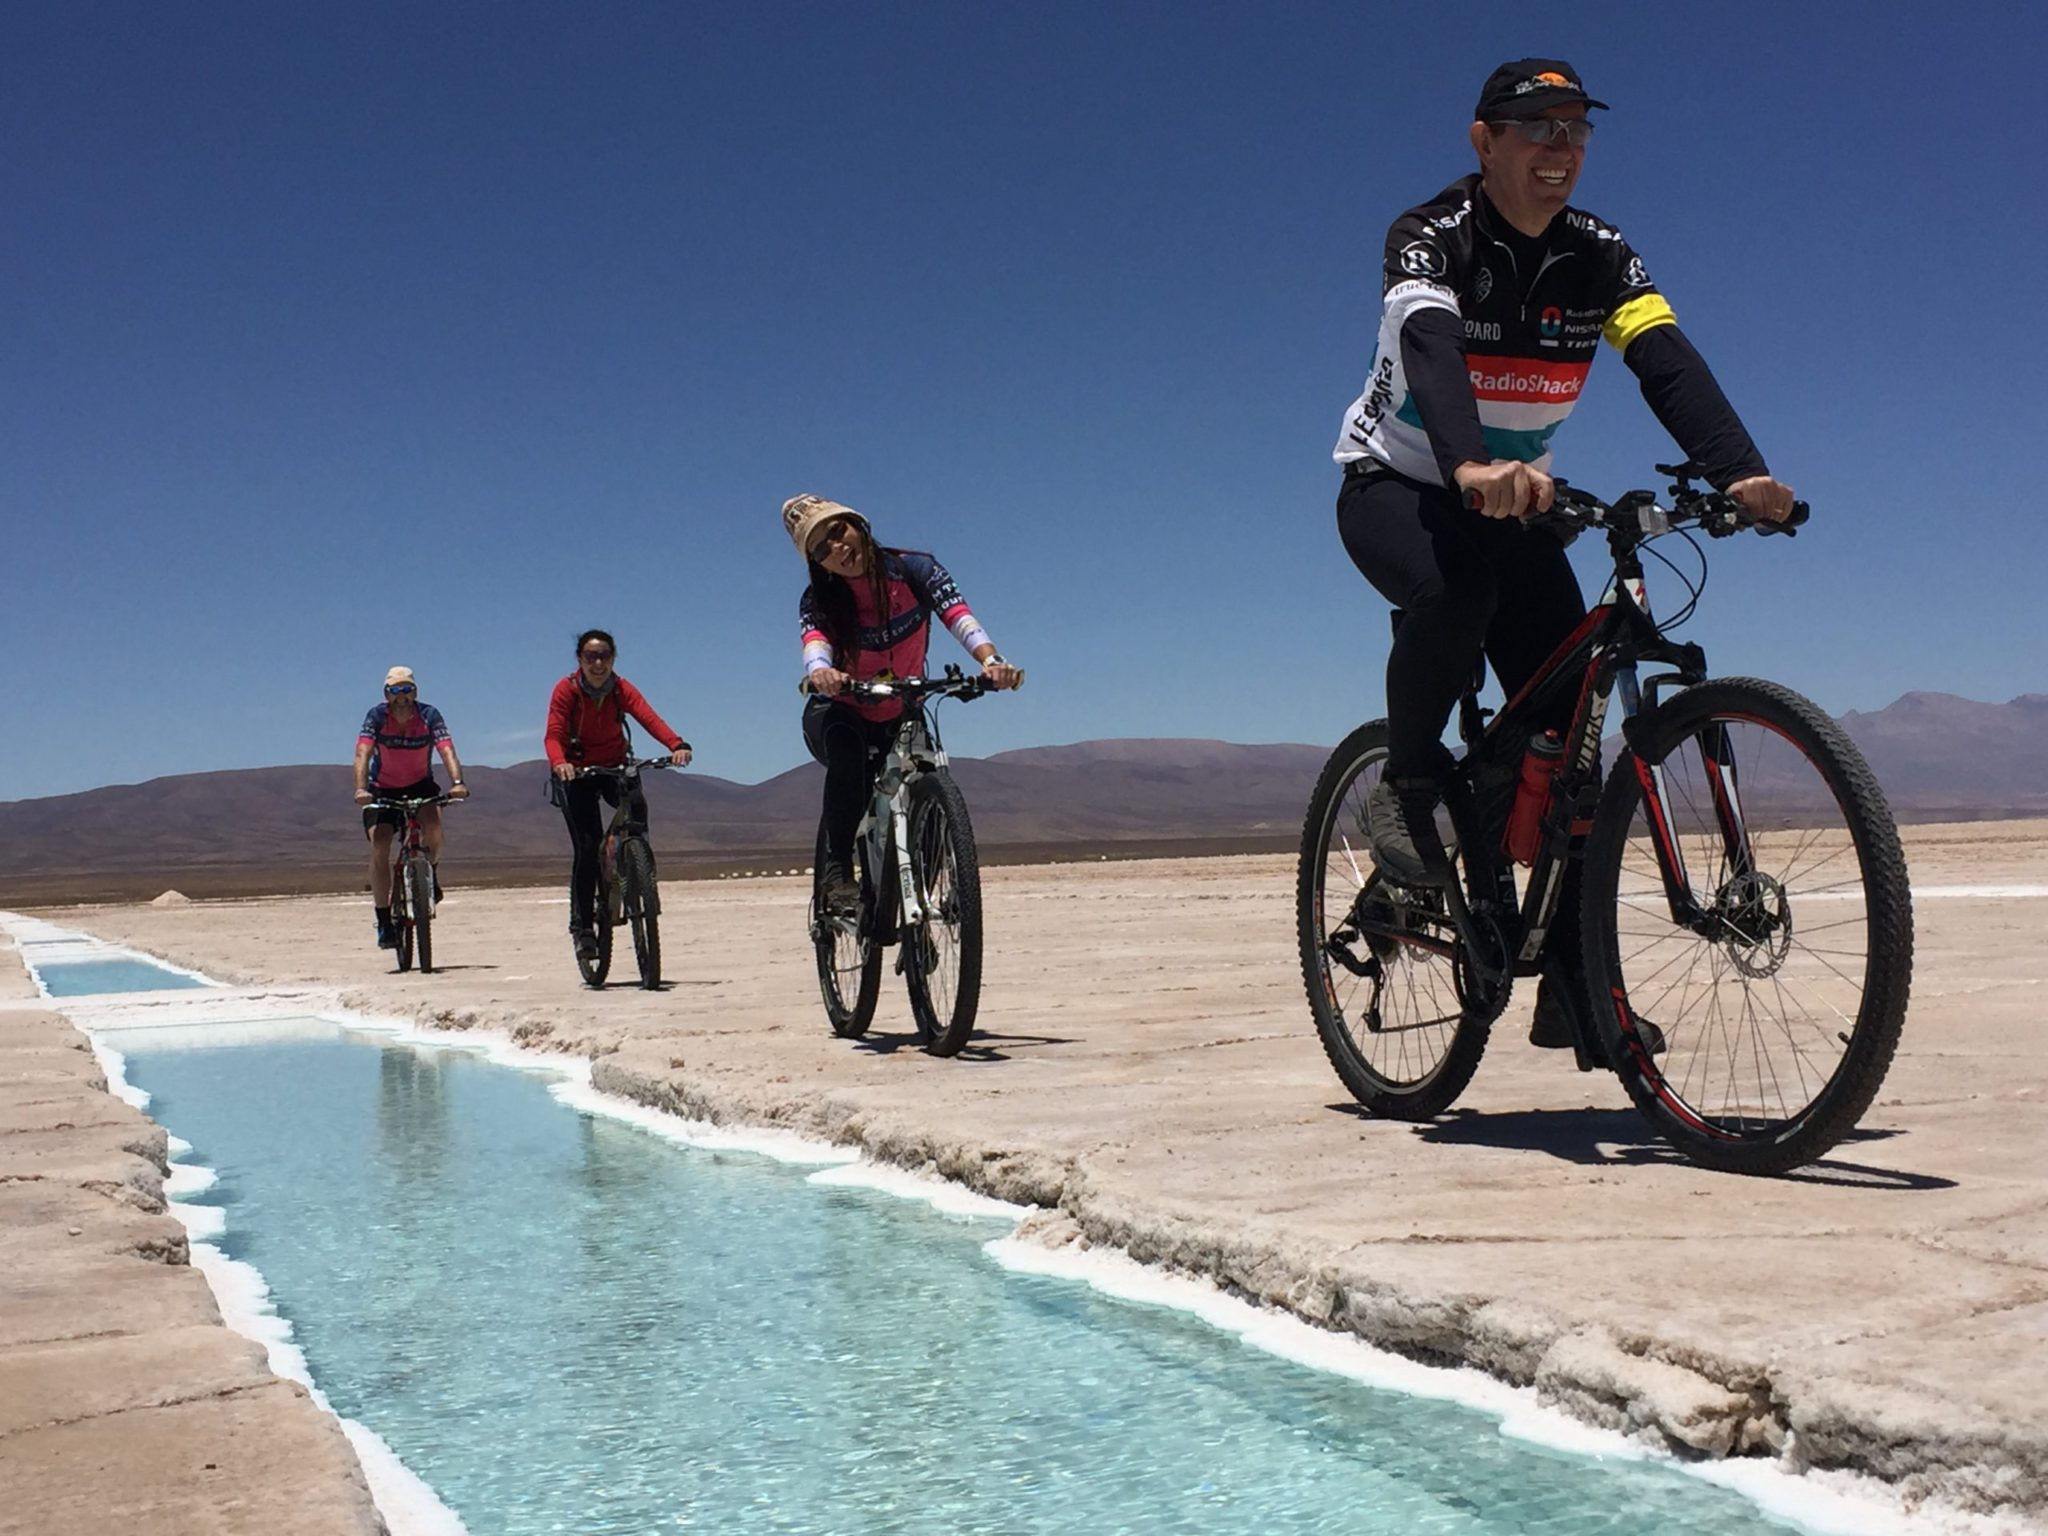 Argentina MTB tour in Salta: Andes mountain biking holiday